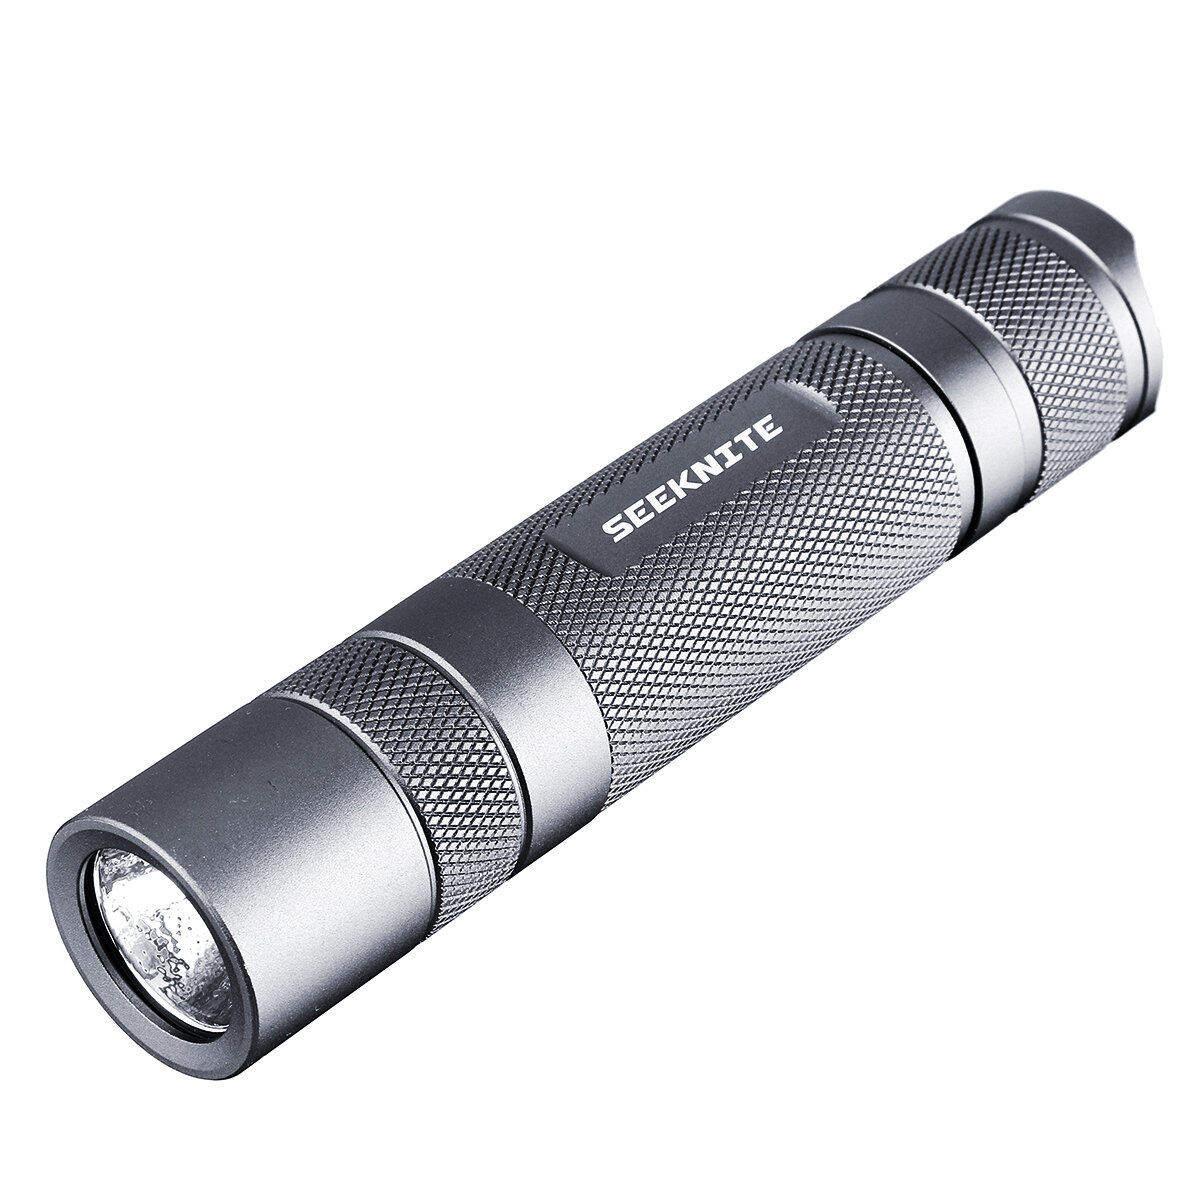 SEEKNITE ST02 Gray SST40 1800lm 5000K 18650 Tactical Flashlight S2+ or S2 Temperature Protection Management LED Mini Torch